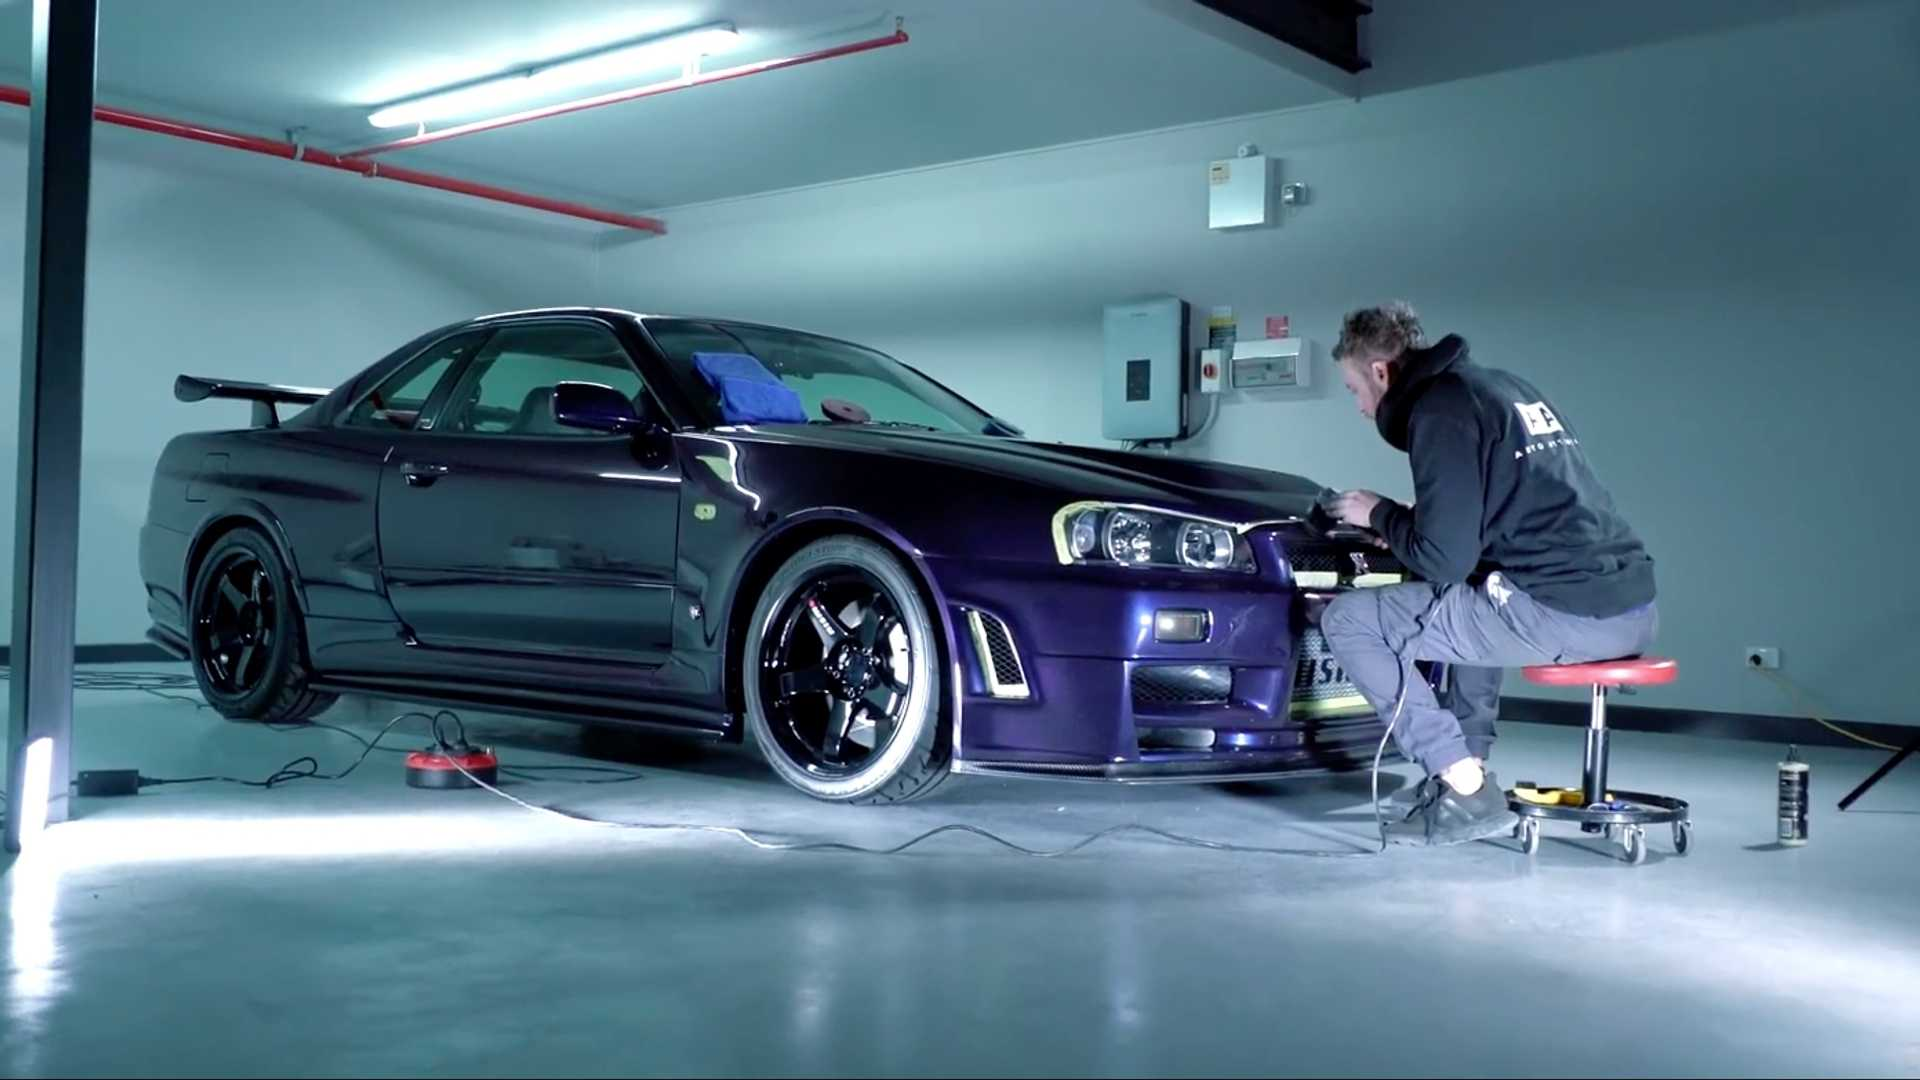 Detailing World S Most Expensive Nissan Gt R R34 Is Relaxing To See